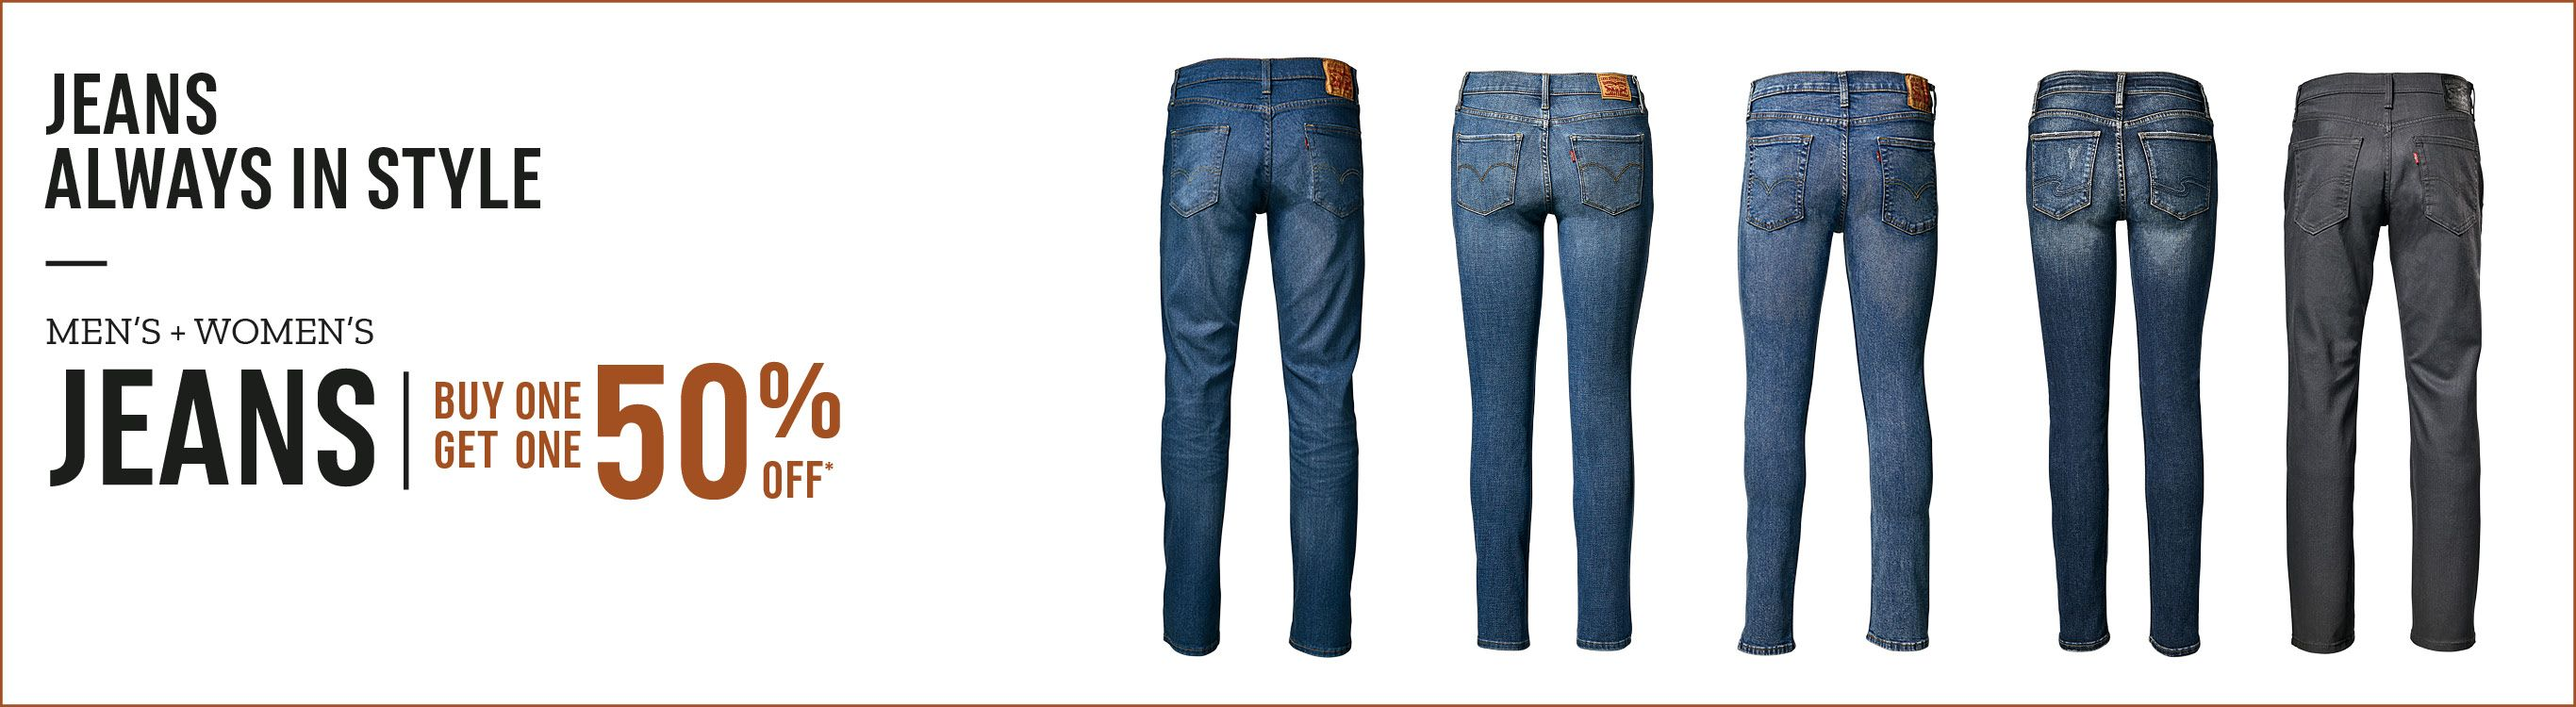 Men's and Women's Jeans Buy One Get One 50% Off.